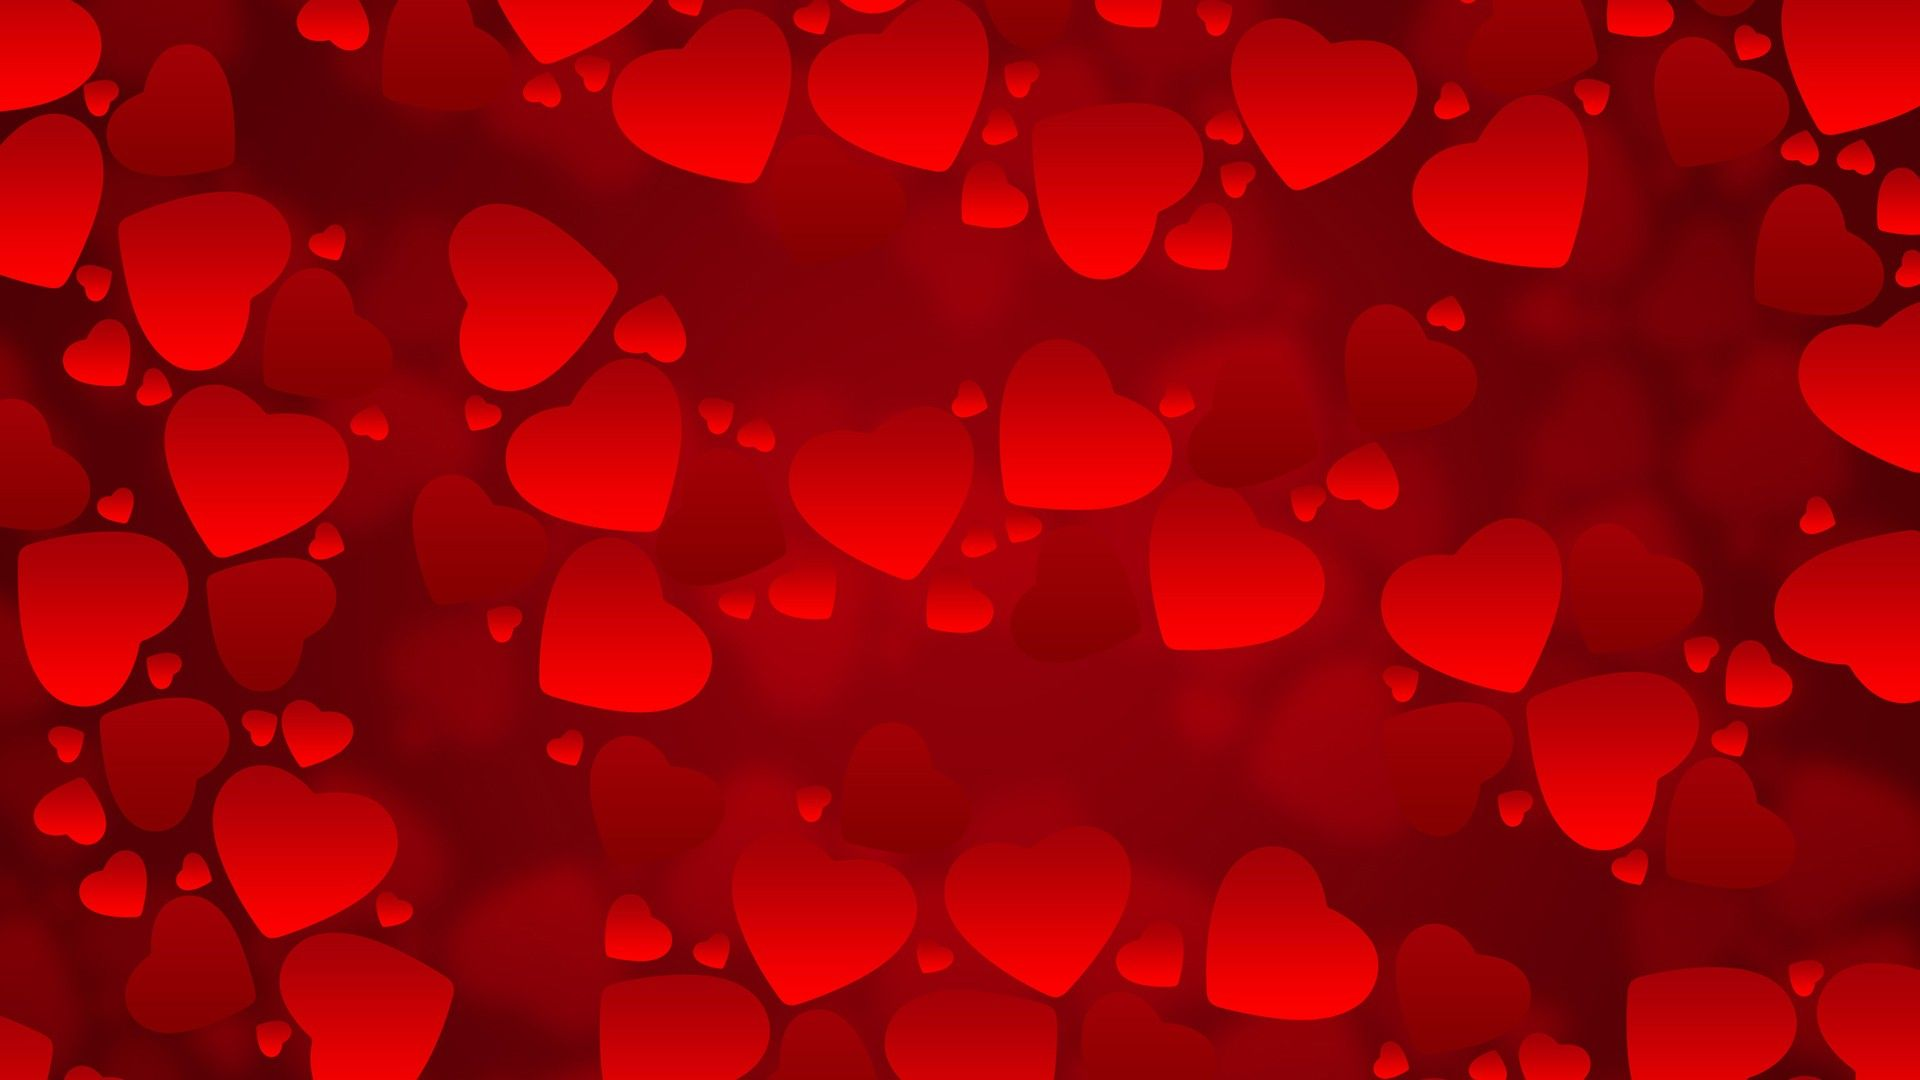 vector hearts 108-0p hd widescreen wallpapers abstract | healthy